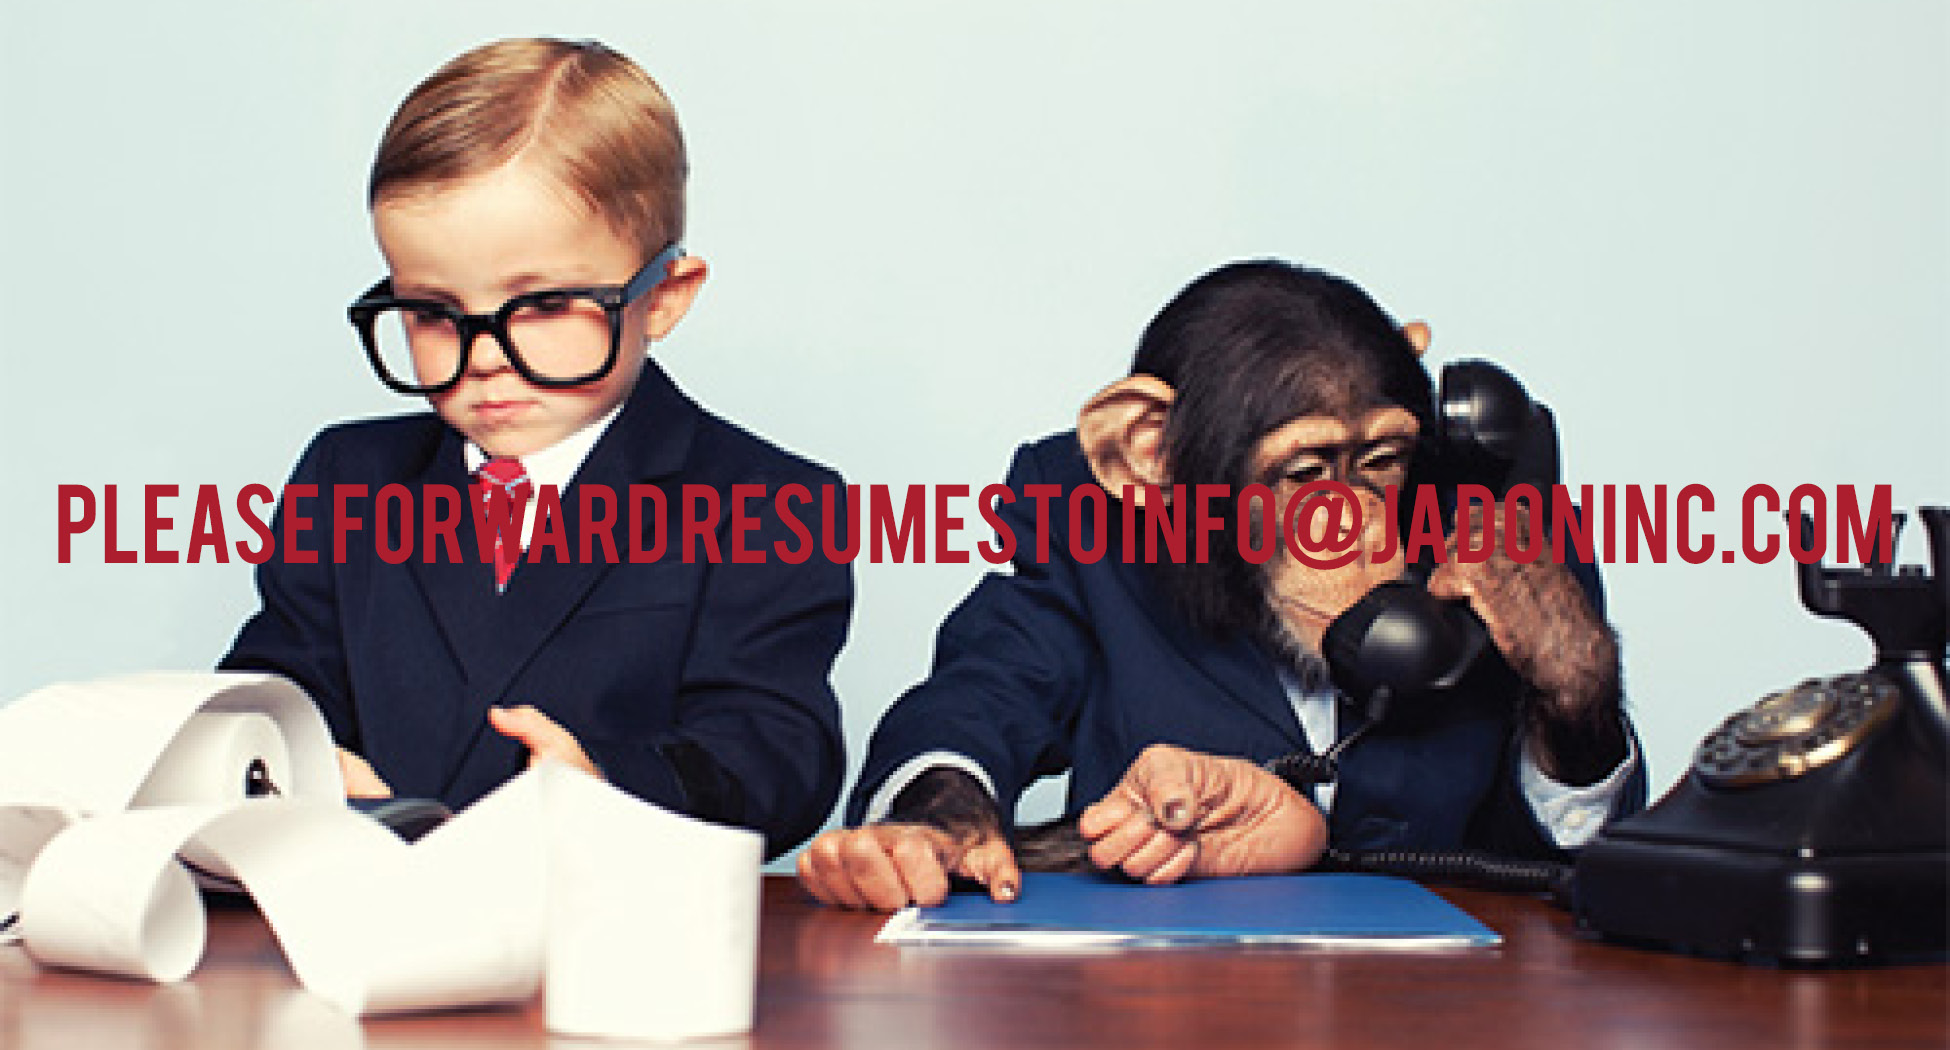 Please forward resumes and CV's to info@jadoninc.com. We can't wait to meet you!